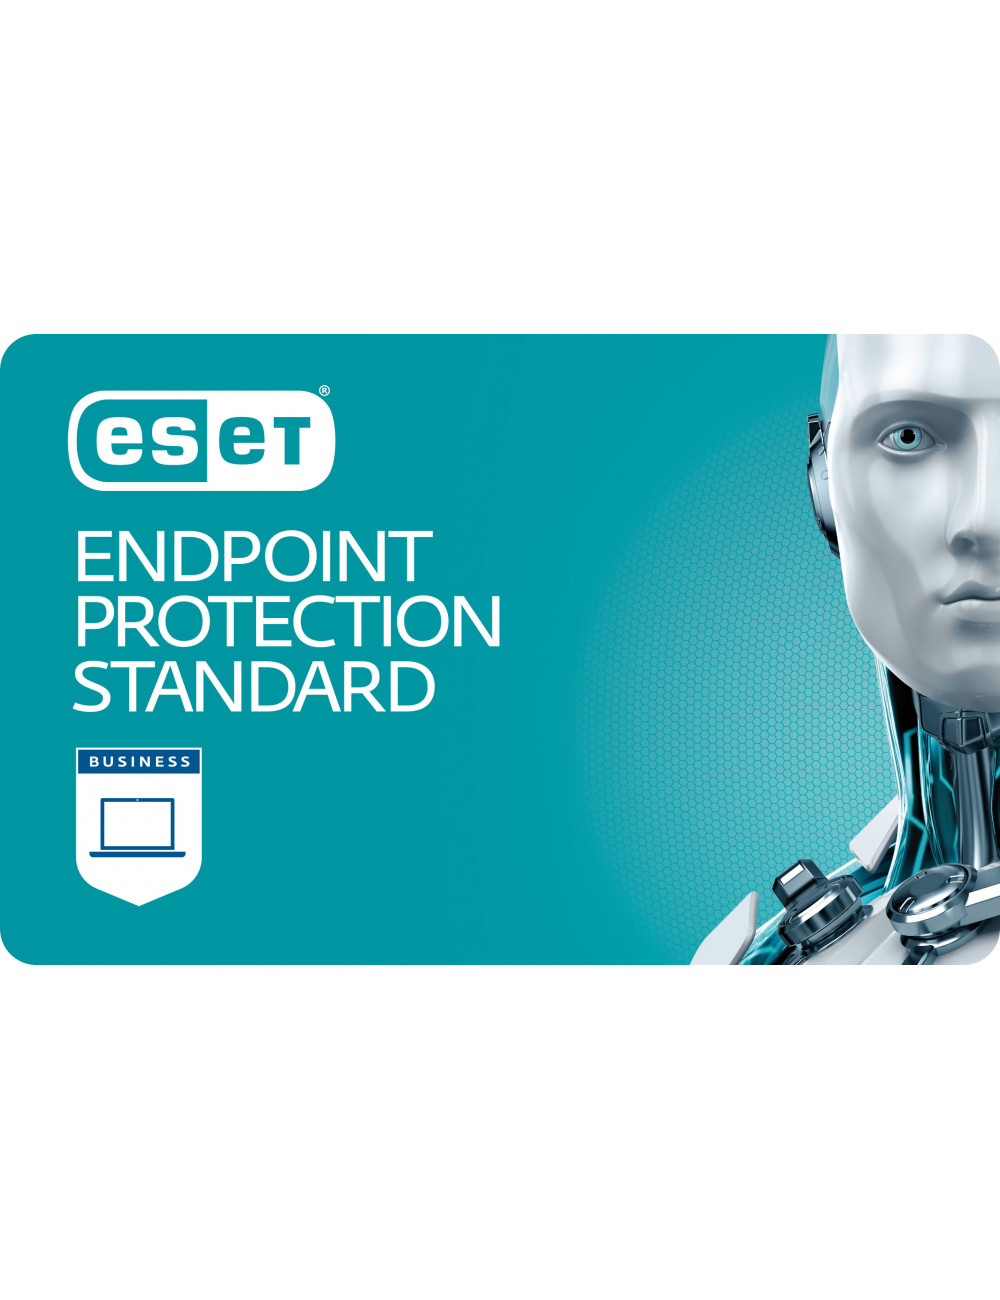 ESET Endpoint Protection Standard (1-10 postes) - Licence 5 postes - 1 an